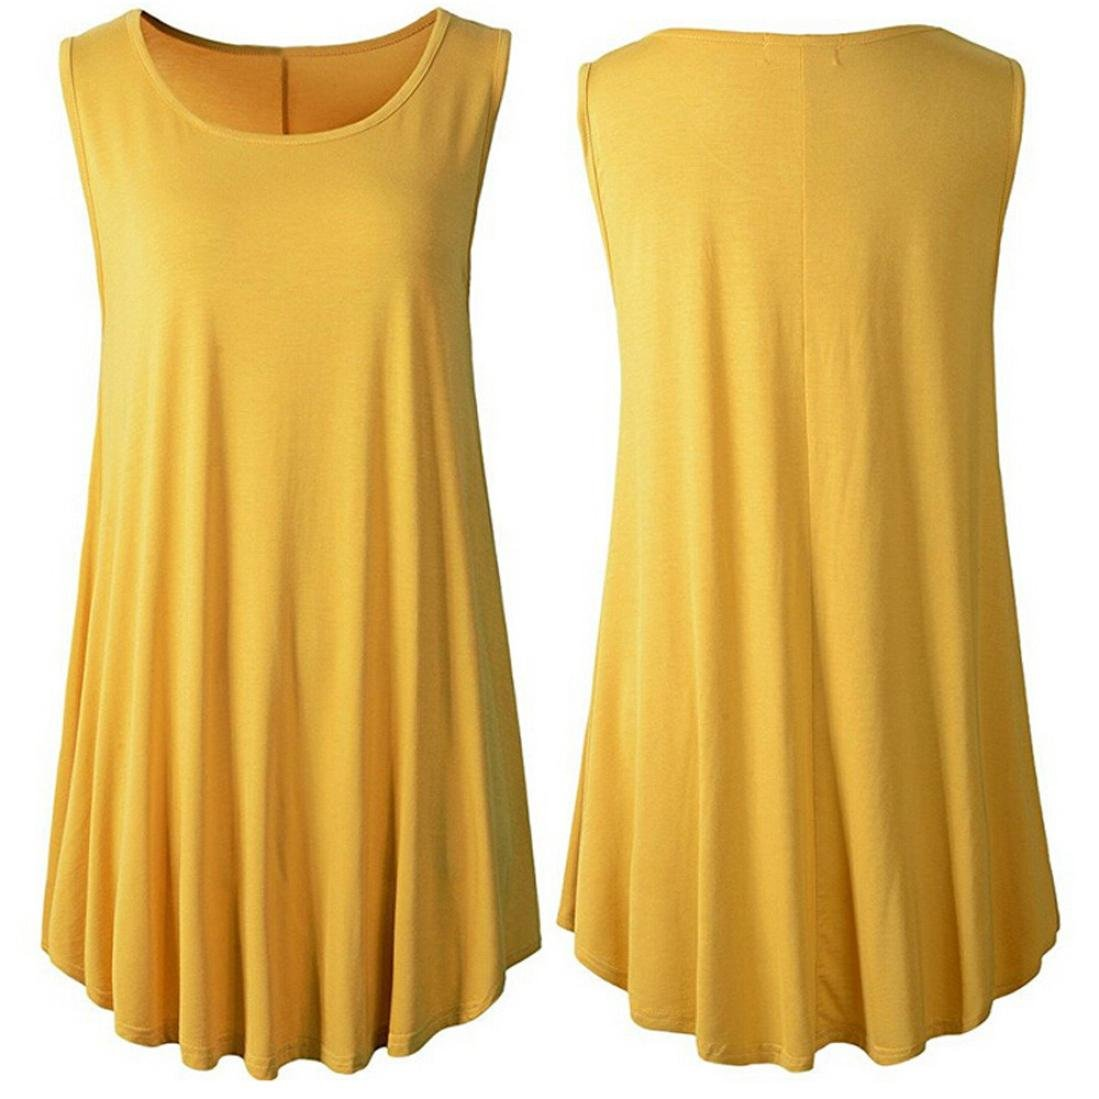 d36fdf3138 Amazon.com: Gallity Round Neck Tops Vest Women Casual Solid Sleeveless Tunic  Soft Swing Flare Tank Top (M, Yellow): Kitchen & Dining